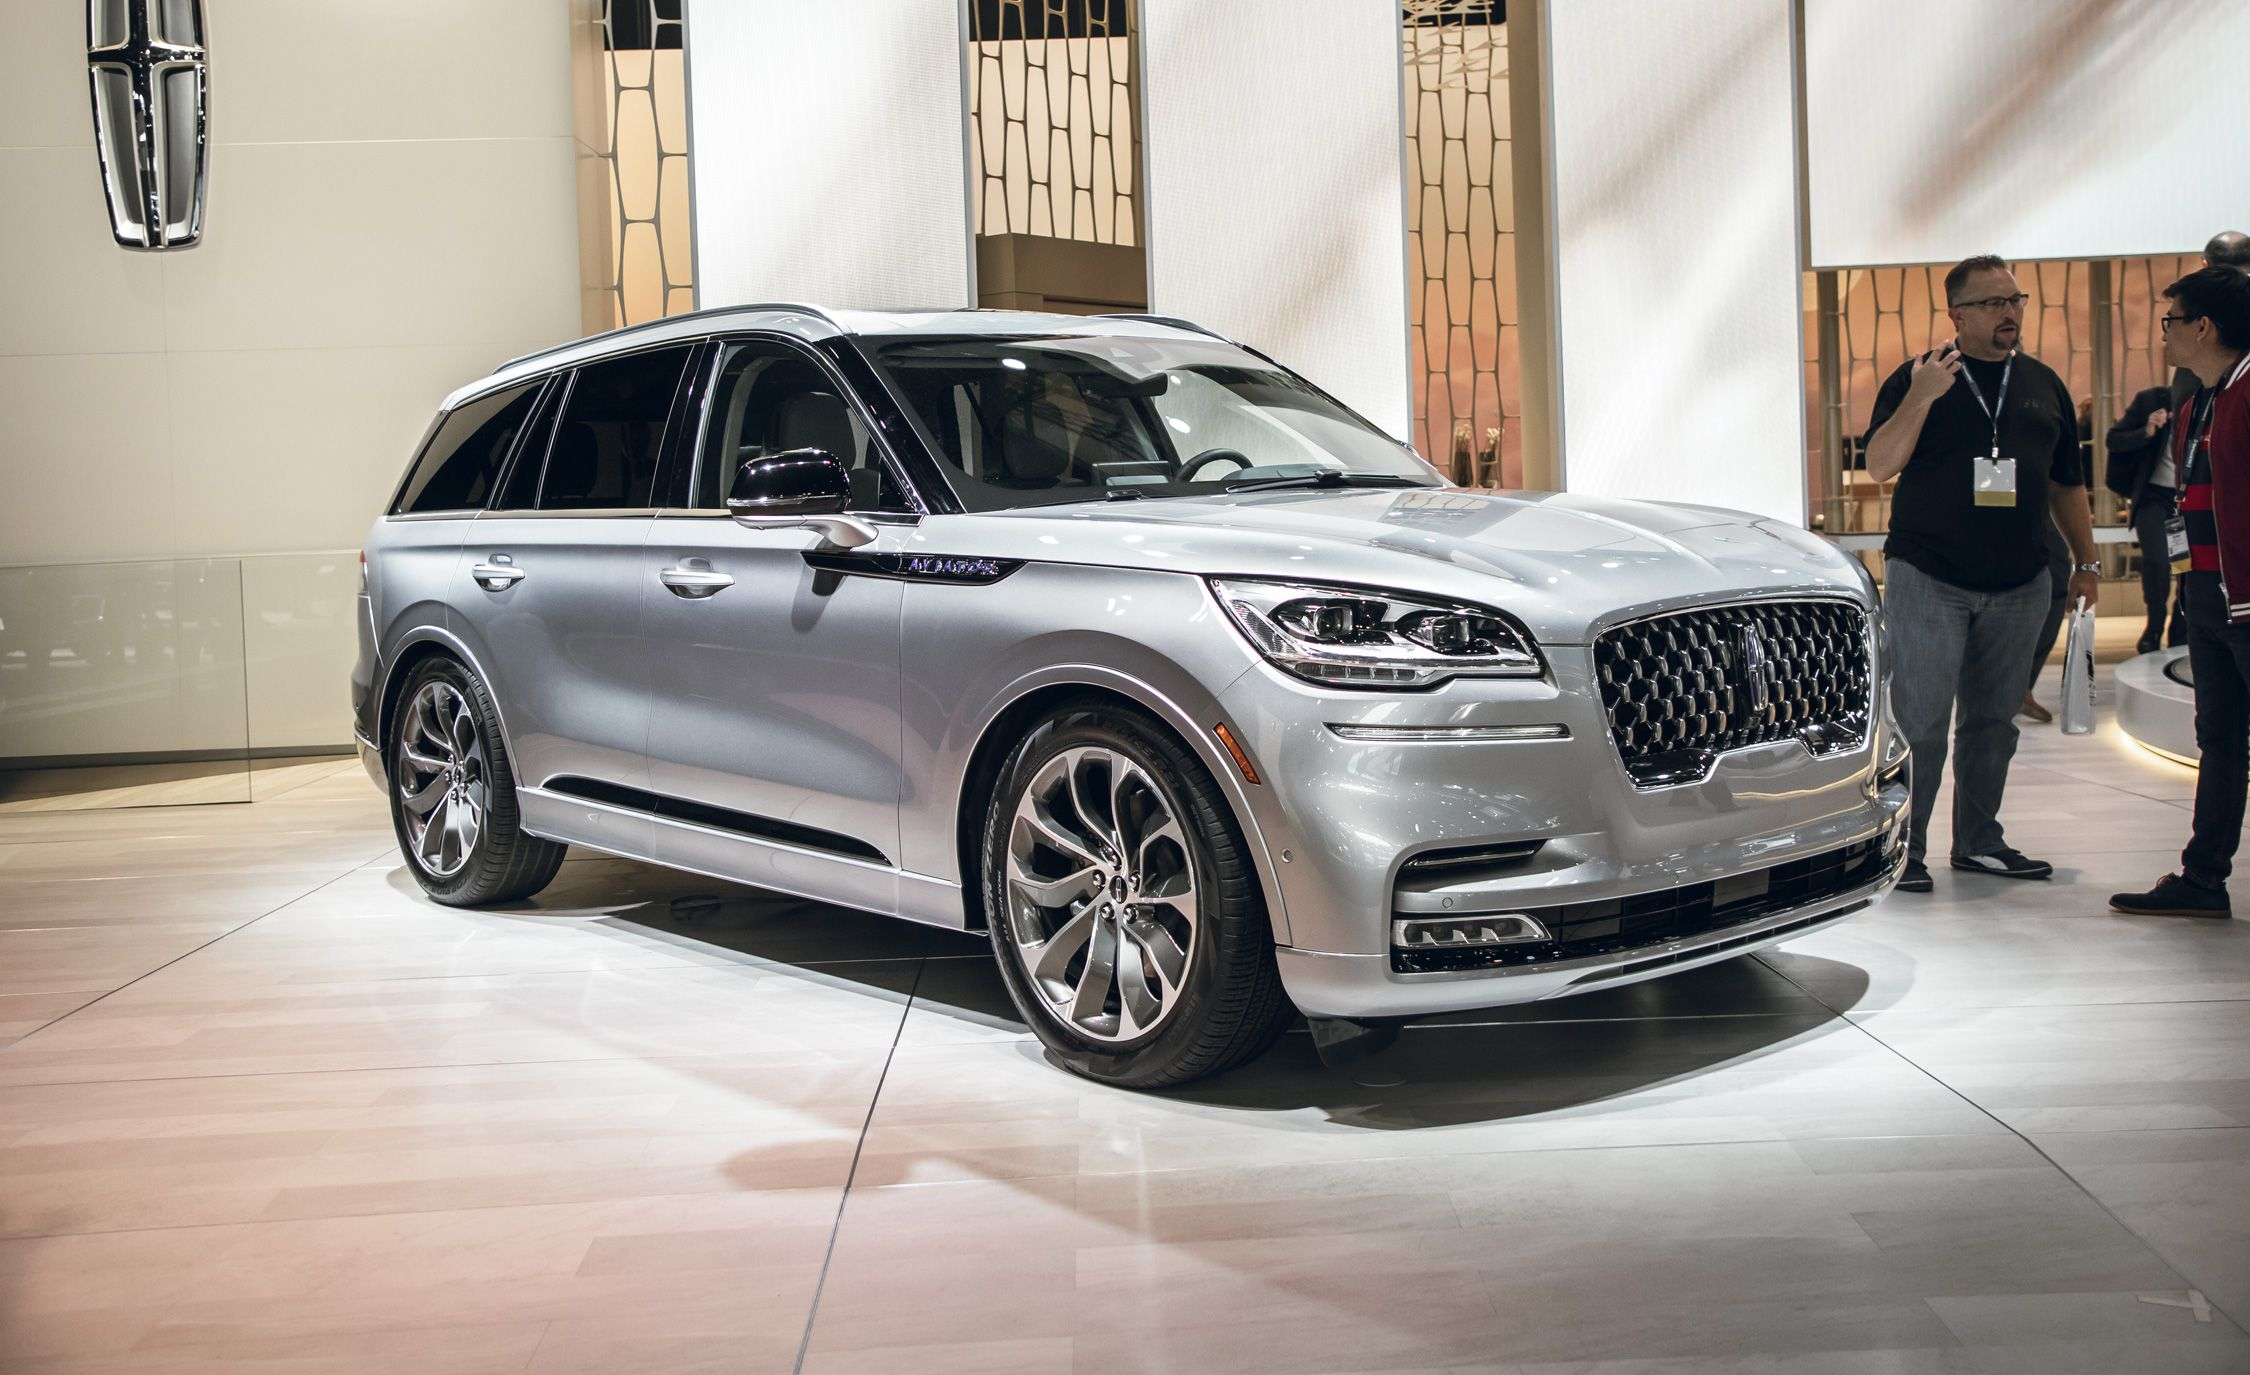 69 New 2020 Lincoln Navigator Picture